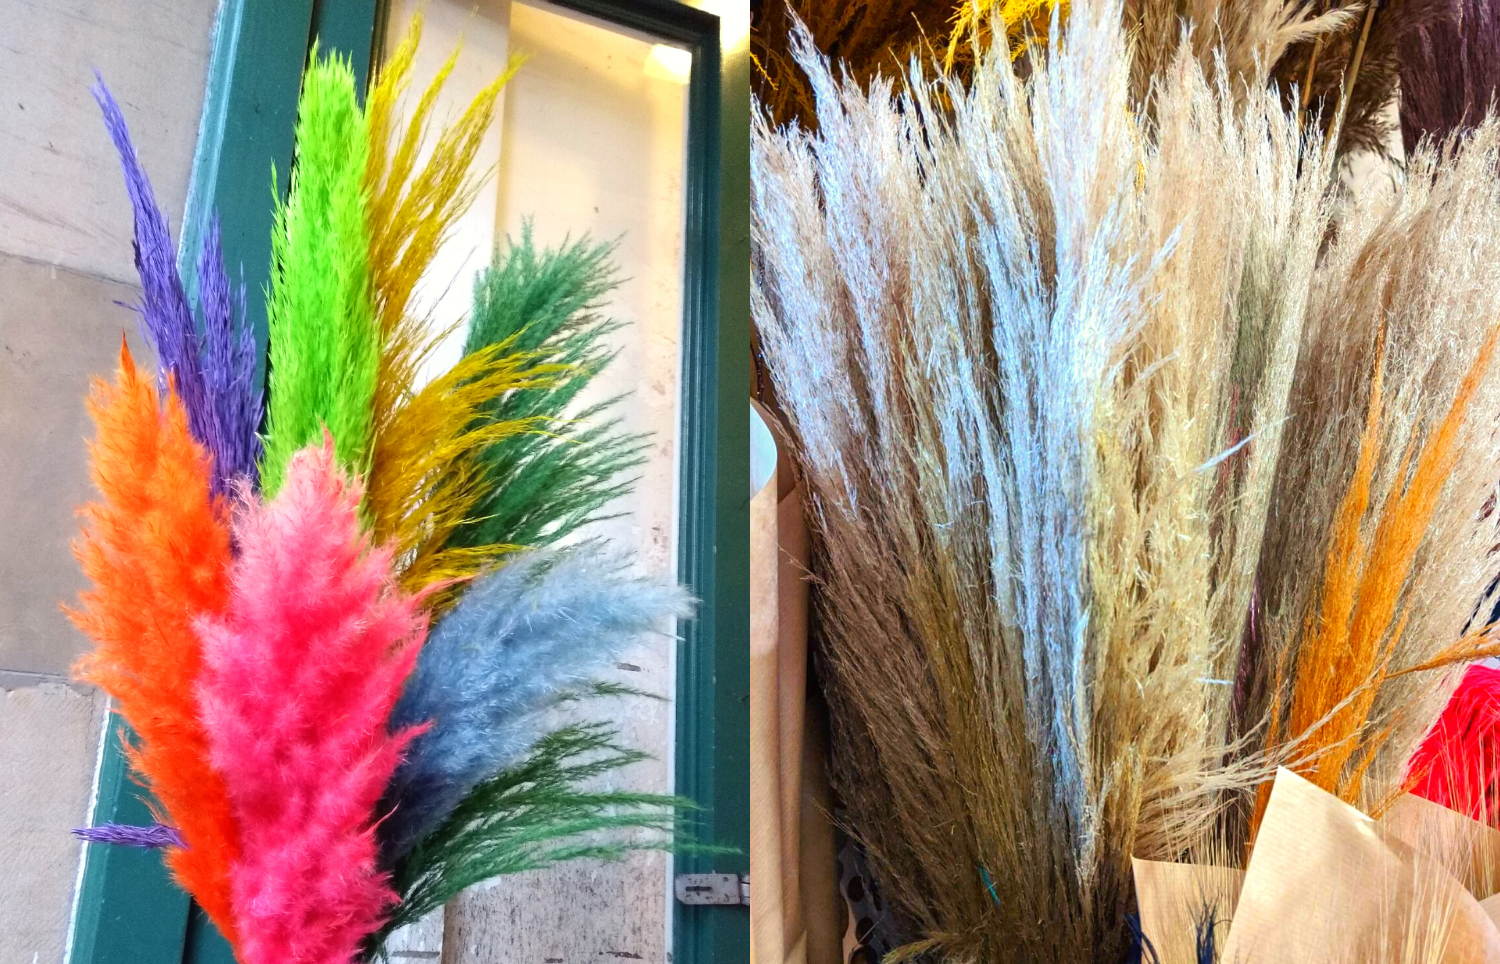 Colourful Pampas Grass and Natural Dried Pampas Grass